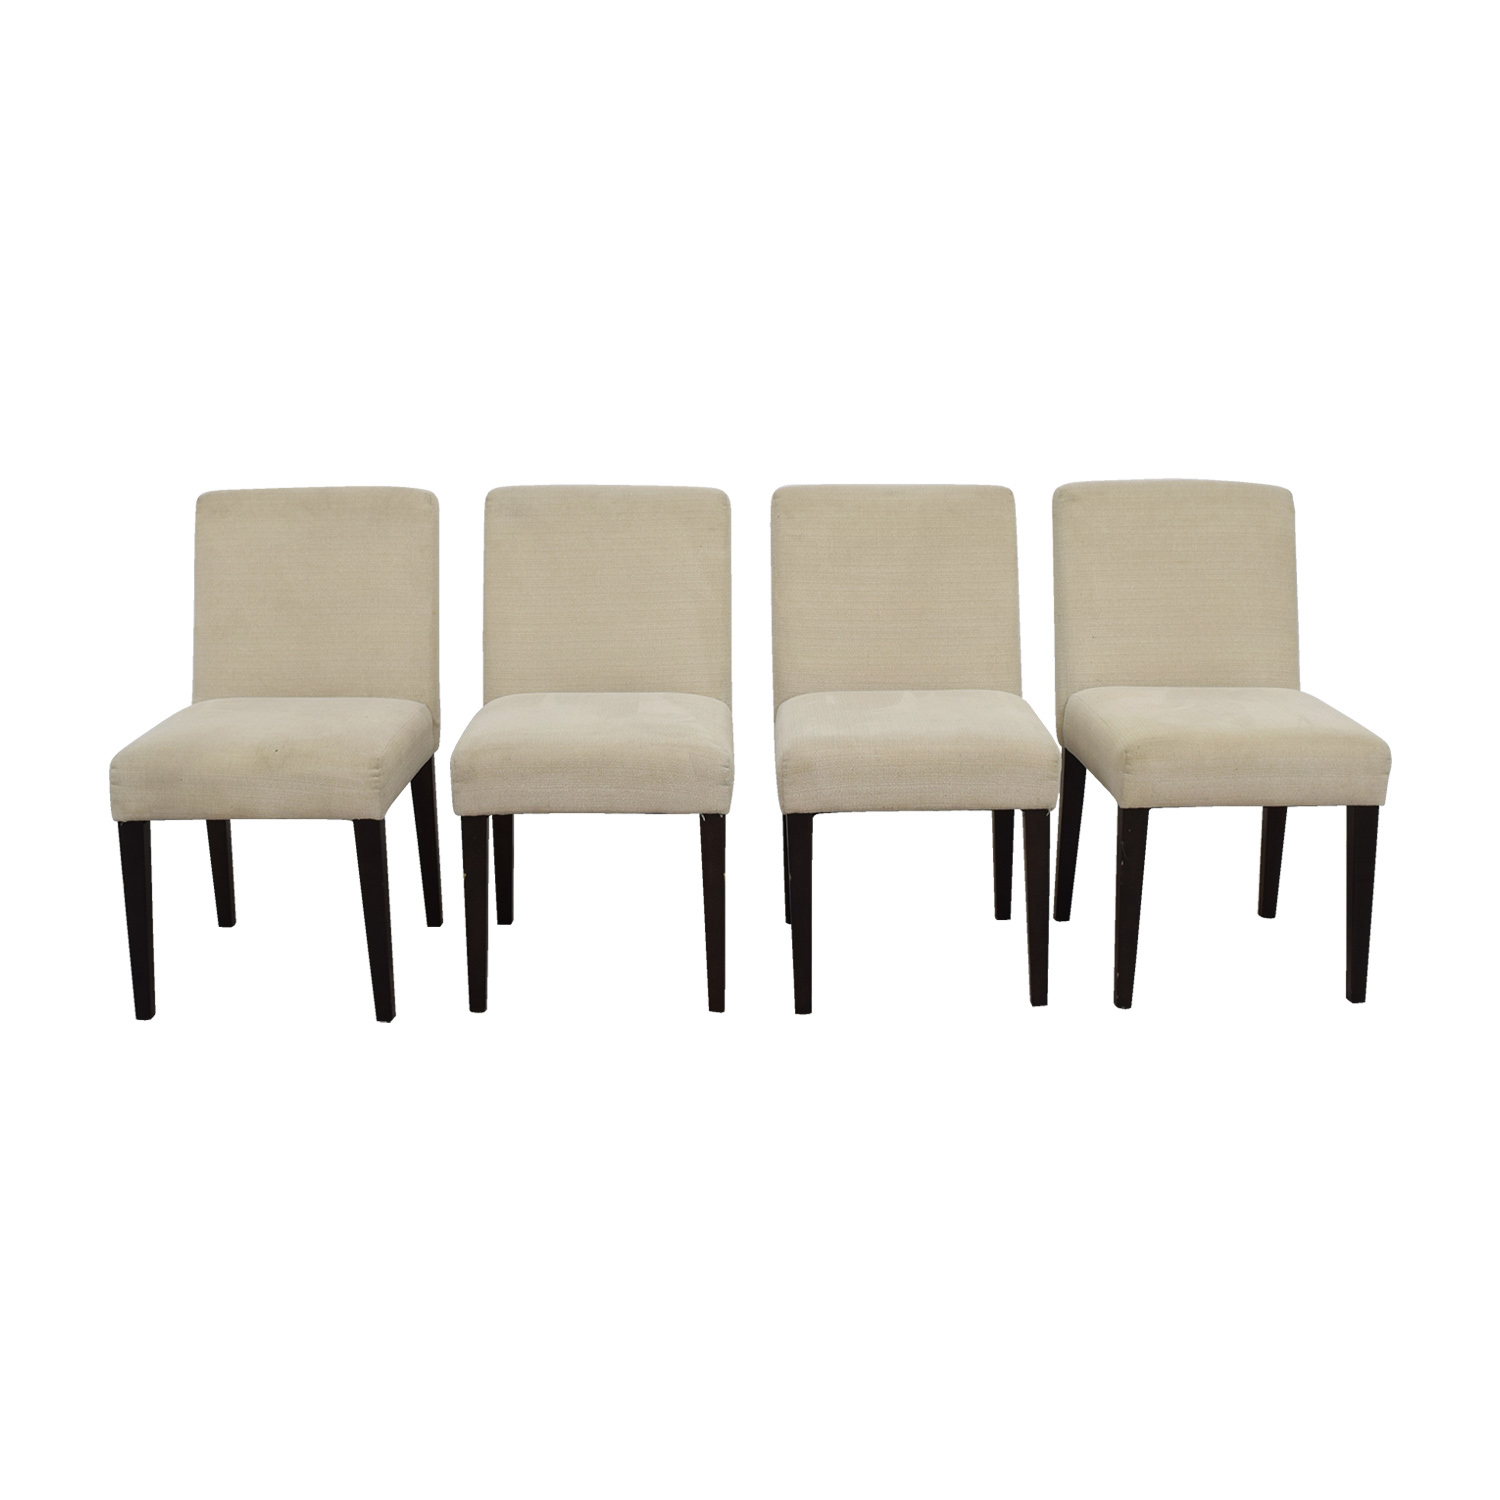 Beige Upholstered Dining Chairs for sale